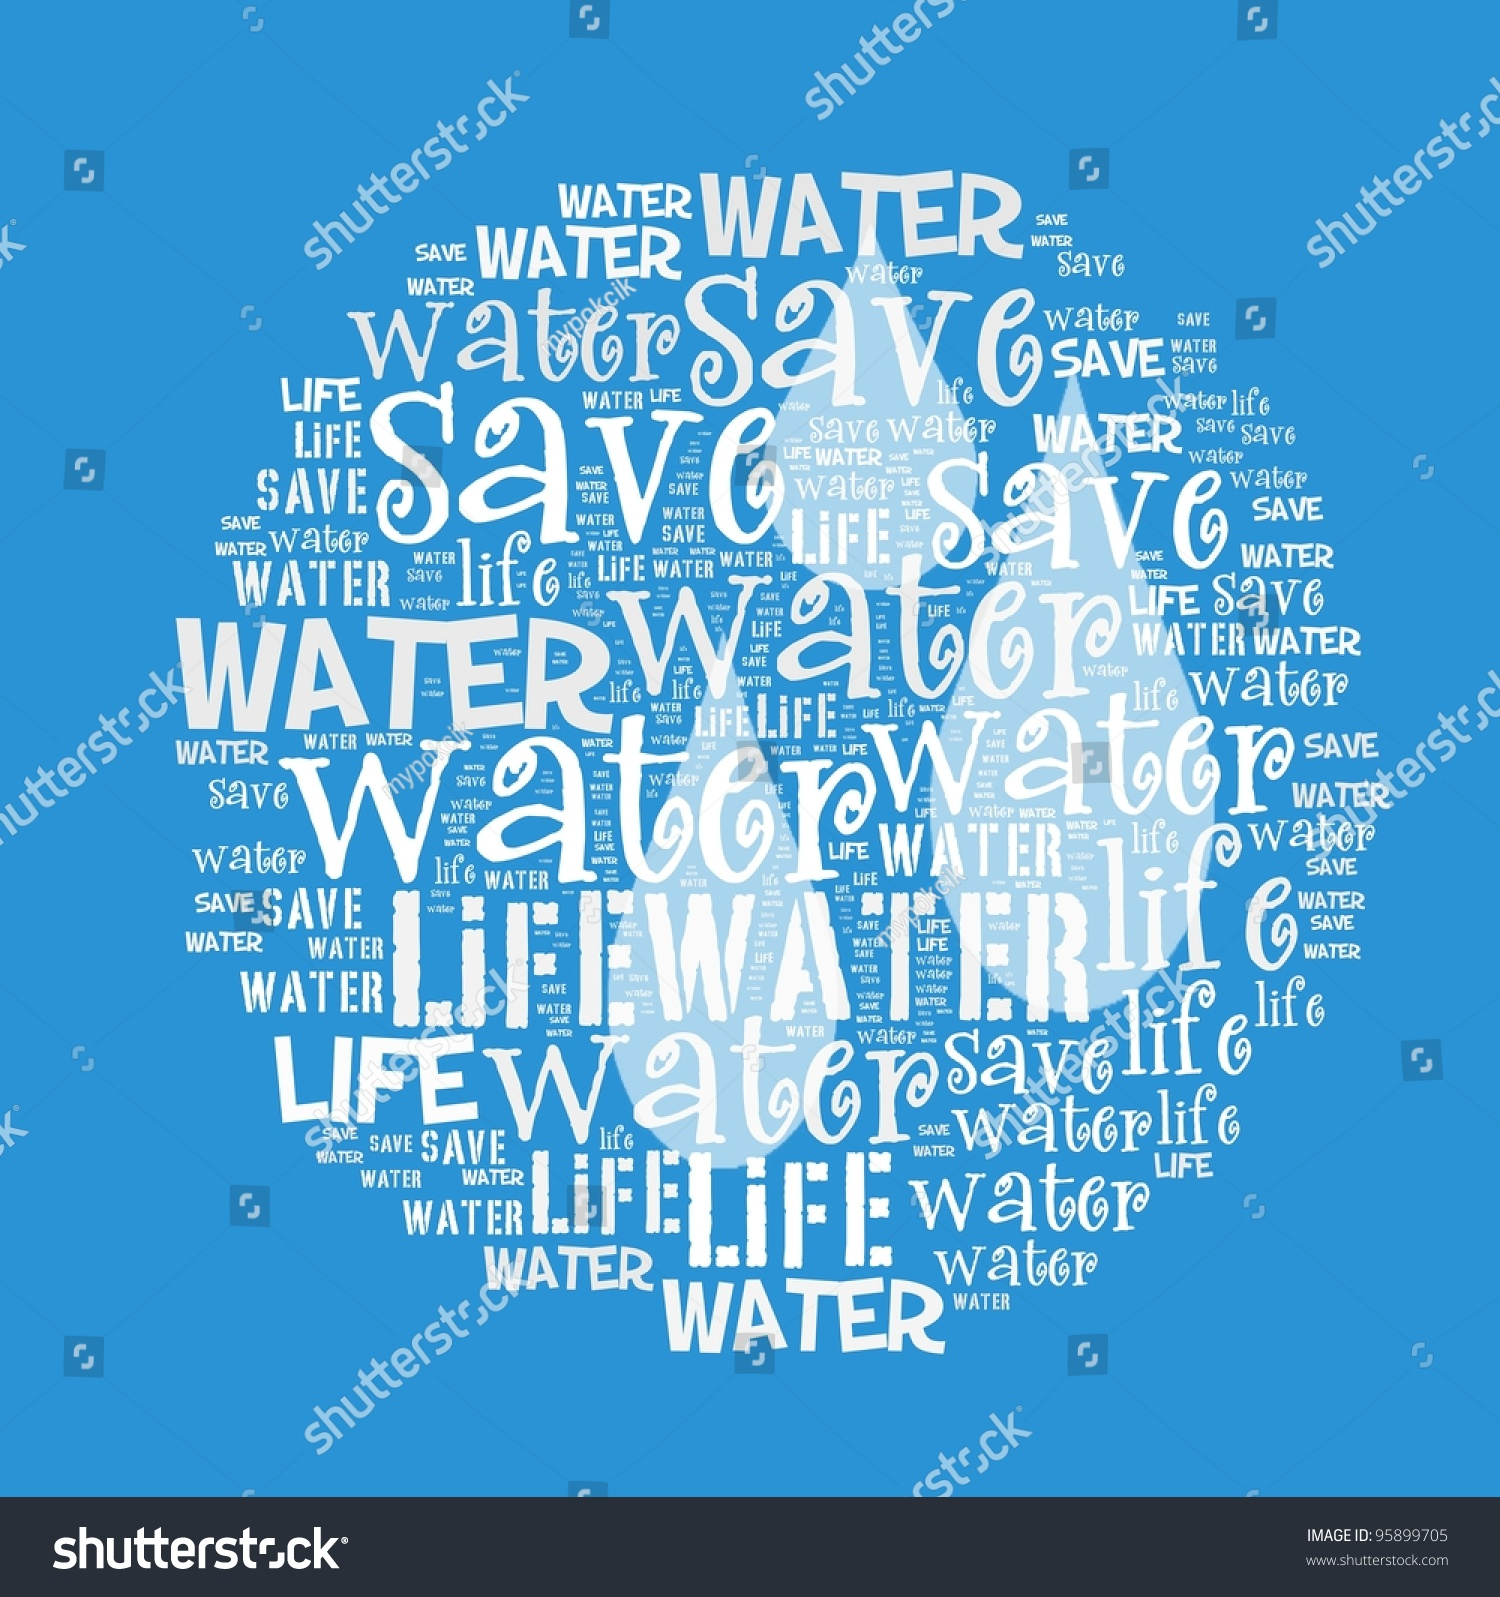 save water save life save world